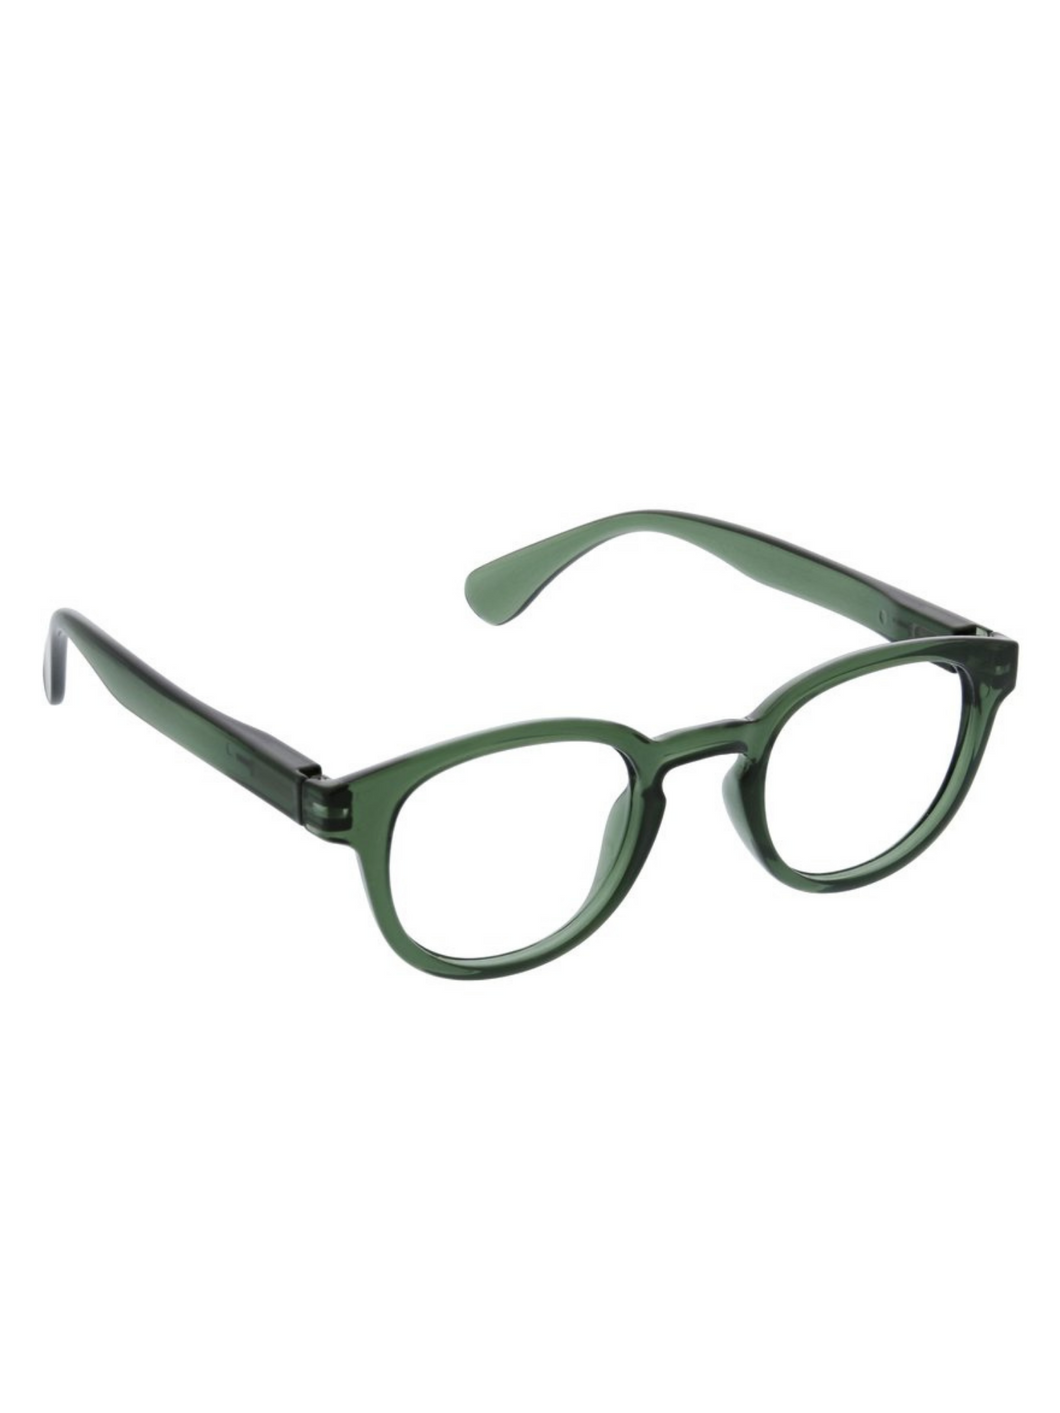 *COMING SOON* Smith Blue Light Glasses - Green